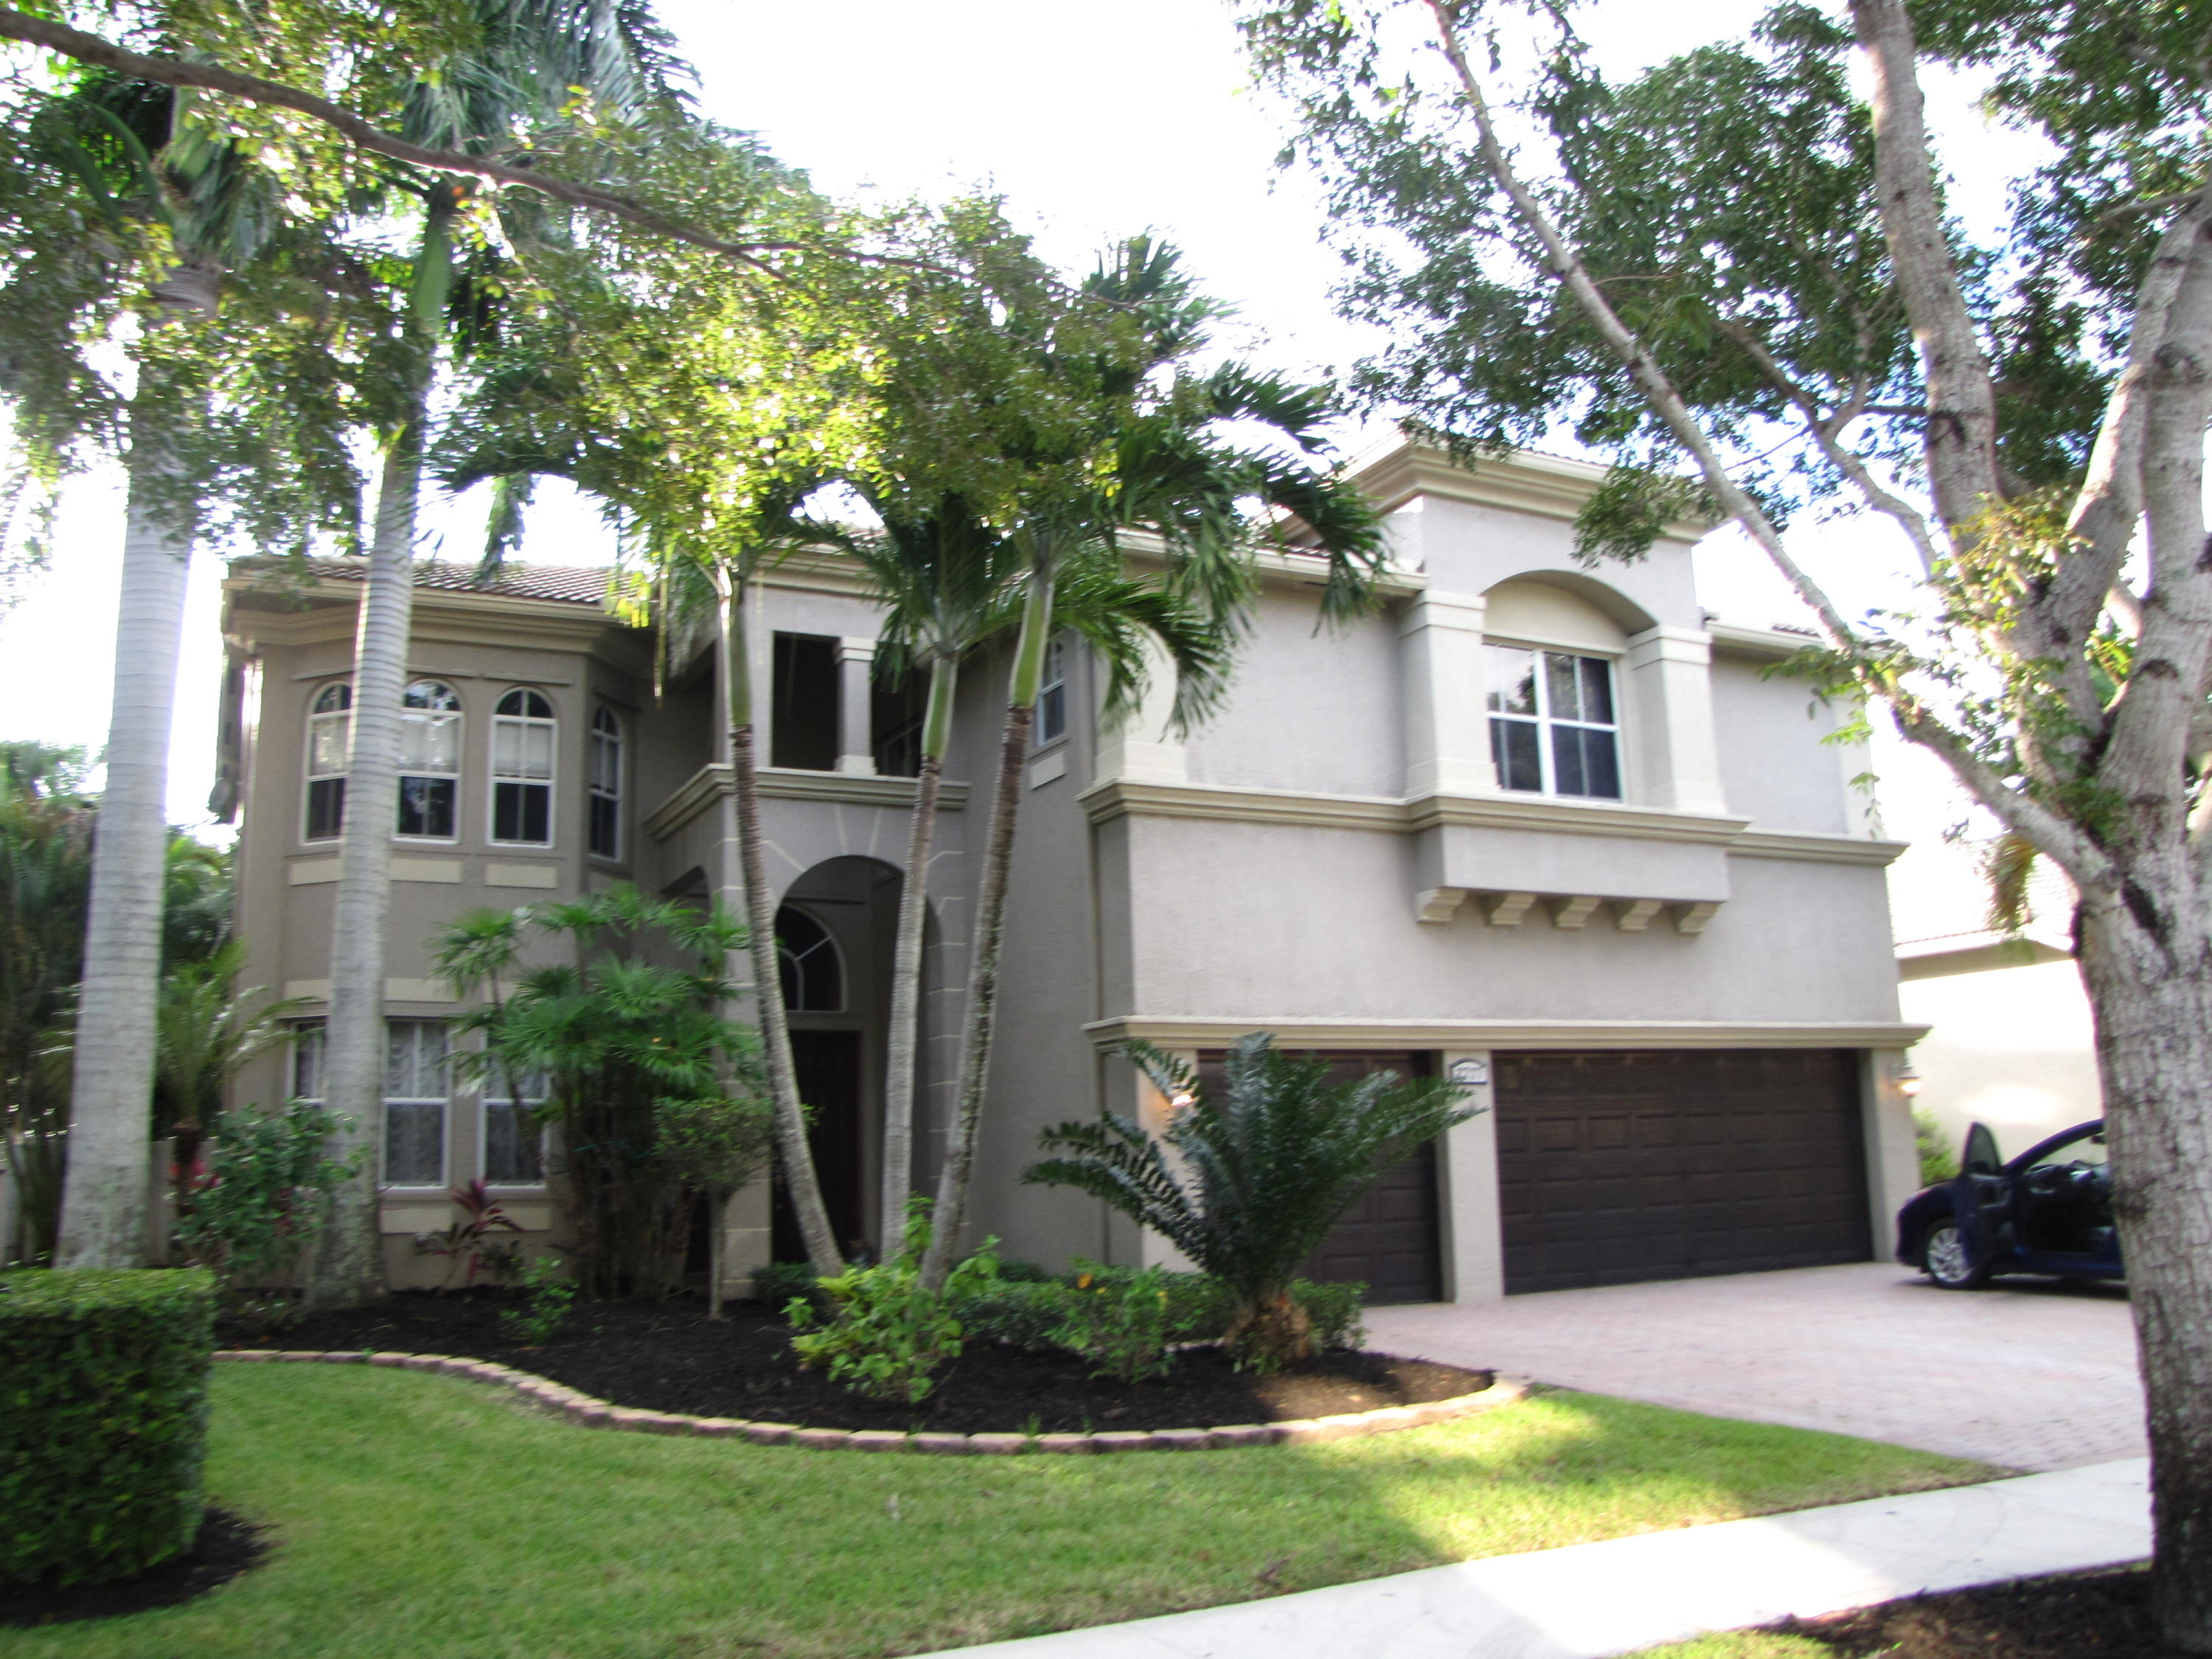 2727 Danforth Terrace, Wellington, Florida 33414, 6 Bedrooms Bedrooms, ,4 BathroomsBathrooms,Single Family,For Sale,Danforth,RX-10442799